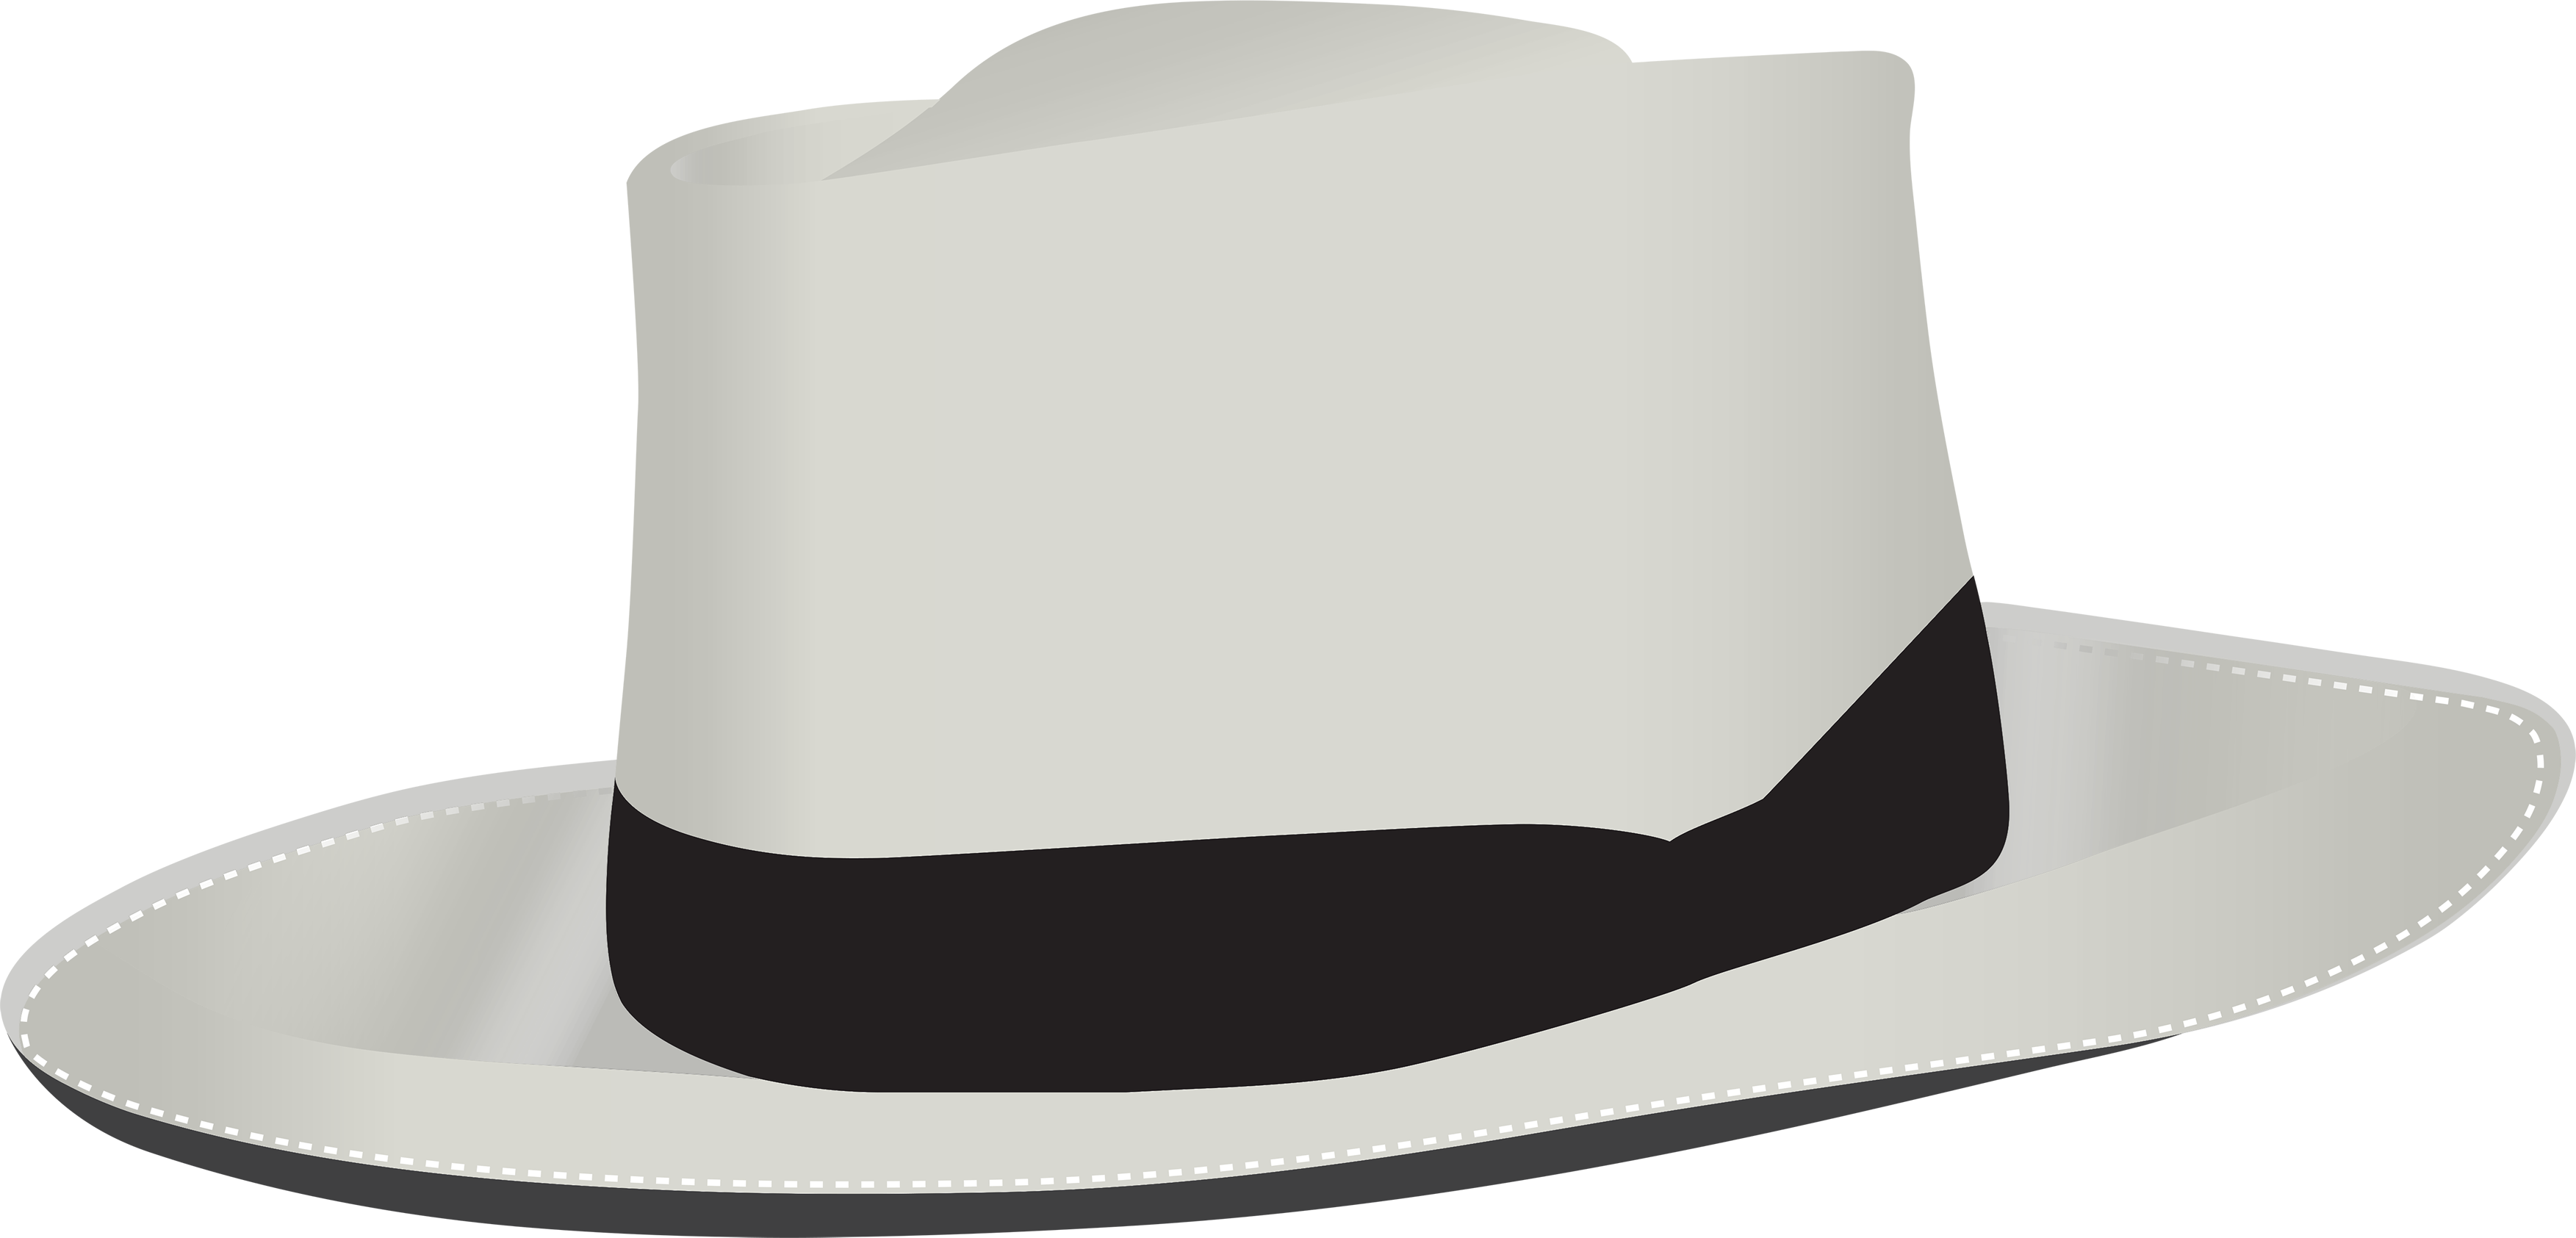 Hats clipart fire. Hat twenty two isolated